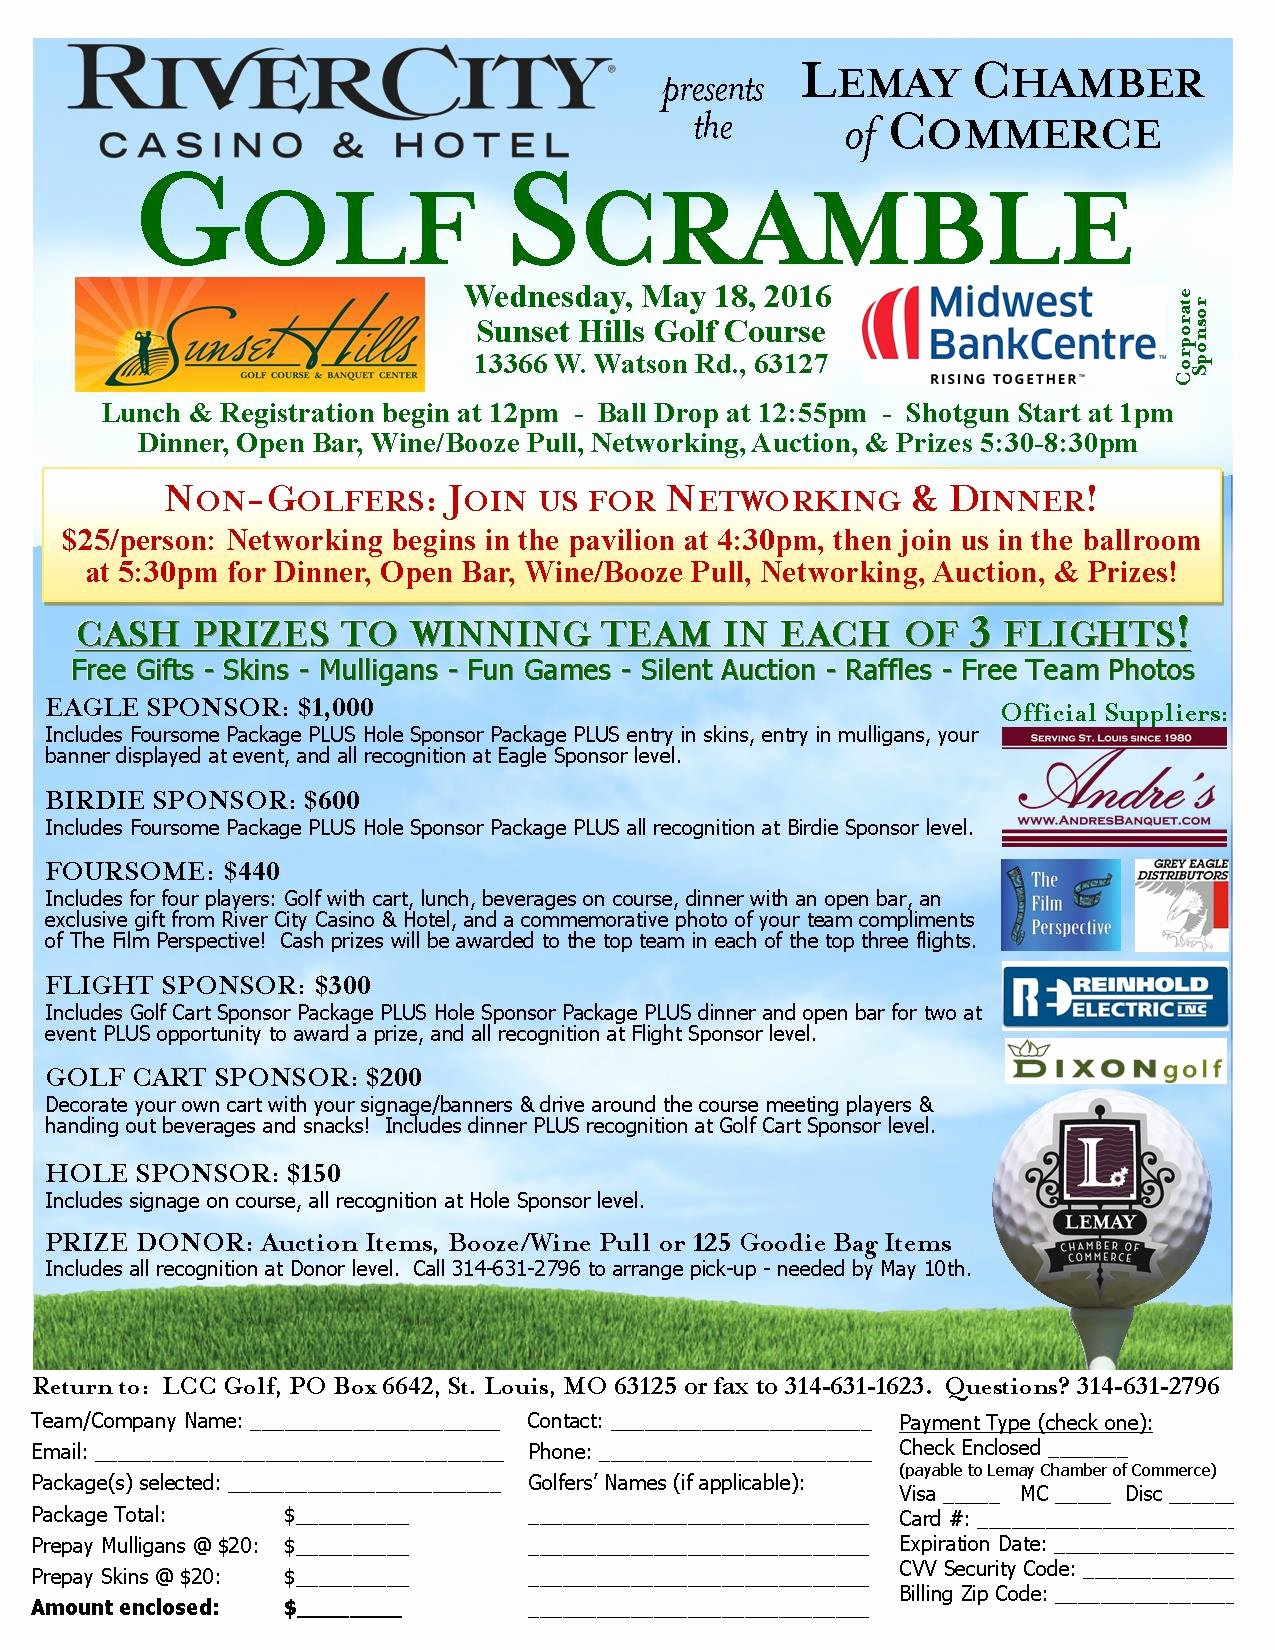 Lemay Chamber Golf Scramble – Lemay Chamber Of Merce